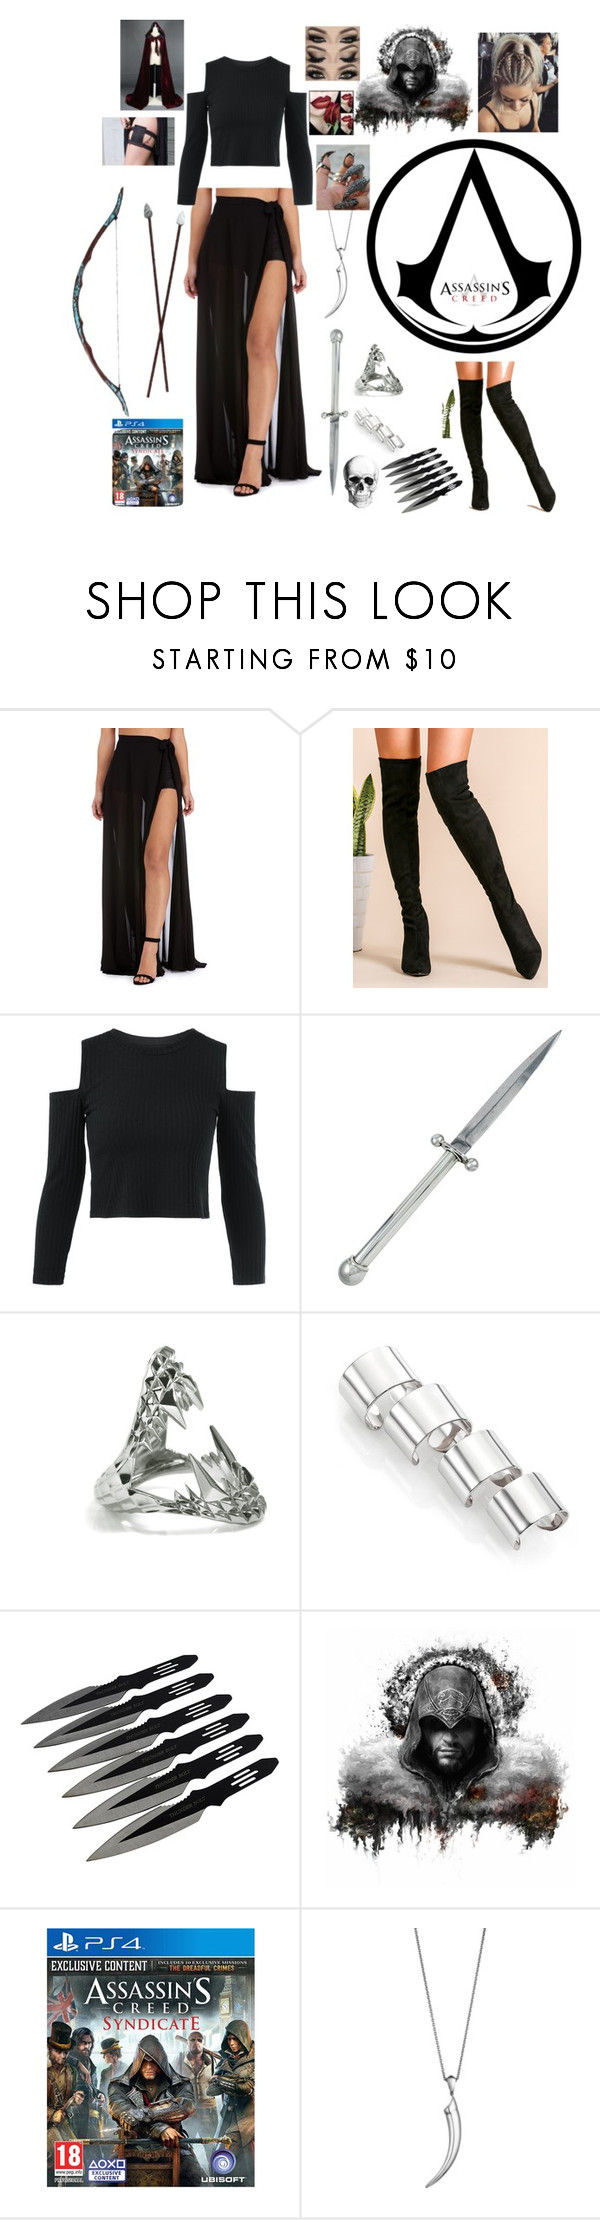 """Assassin in disguise"" by elizrose77864 ❤ liked on Polyvore featuring Kieselstein-Cord, Kasun, Maison Margiela, Shaun Leane and Bow & Arrow"